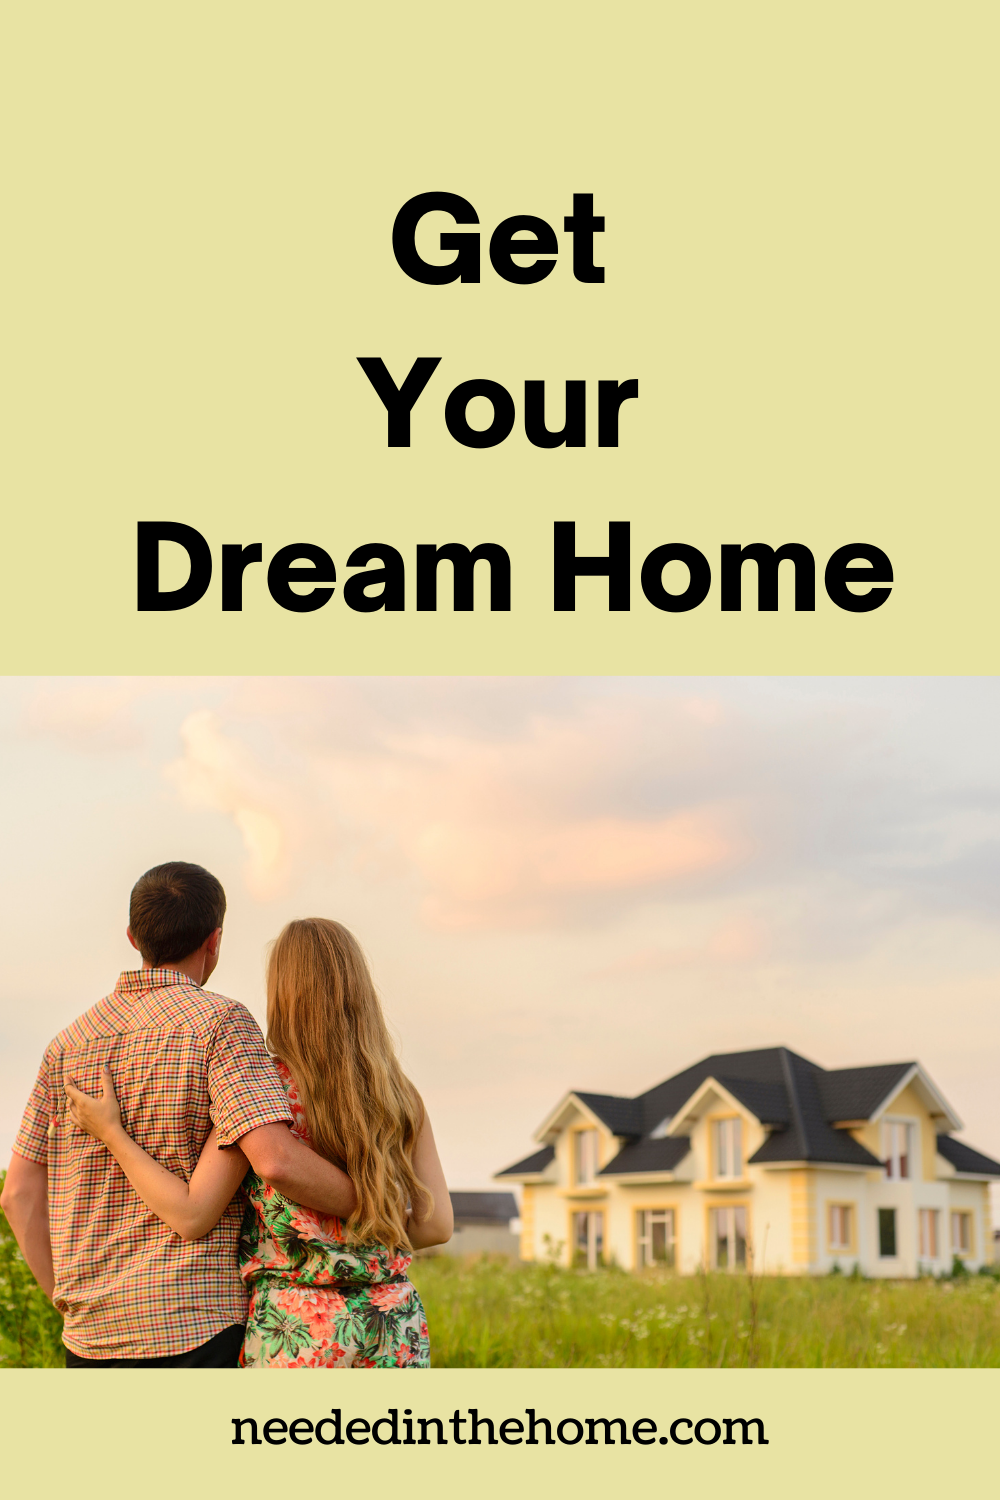 pinterest-pin-description Get Your Dream Home couple looking at a home for sale neededinthehome